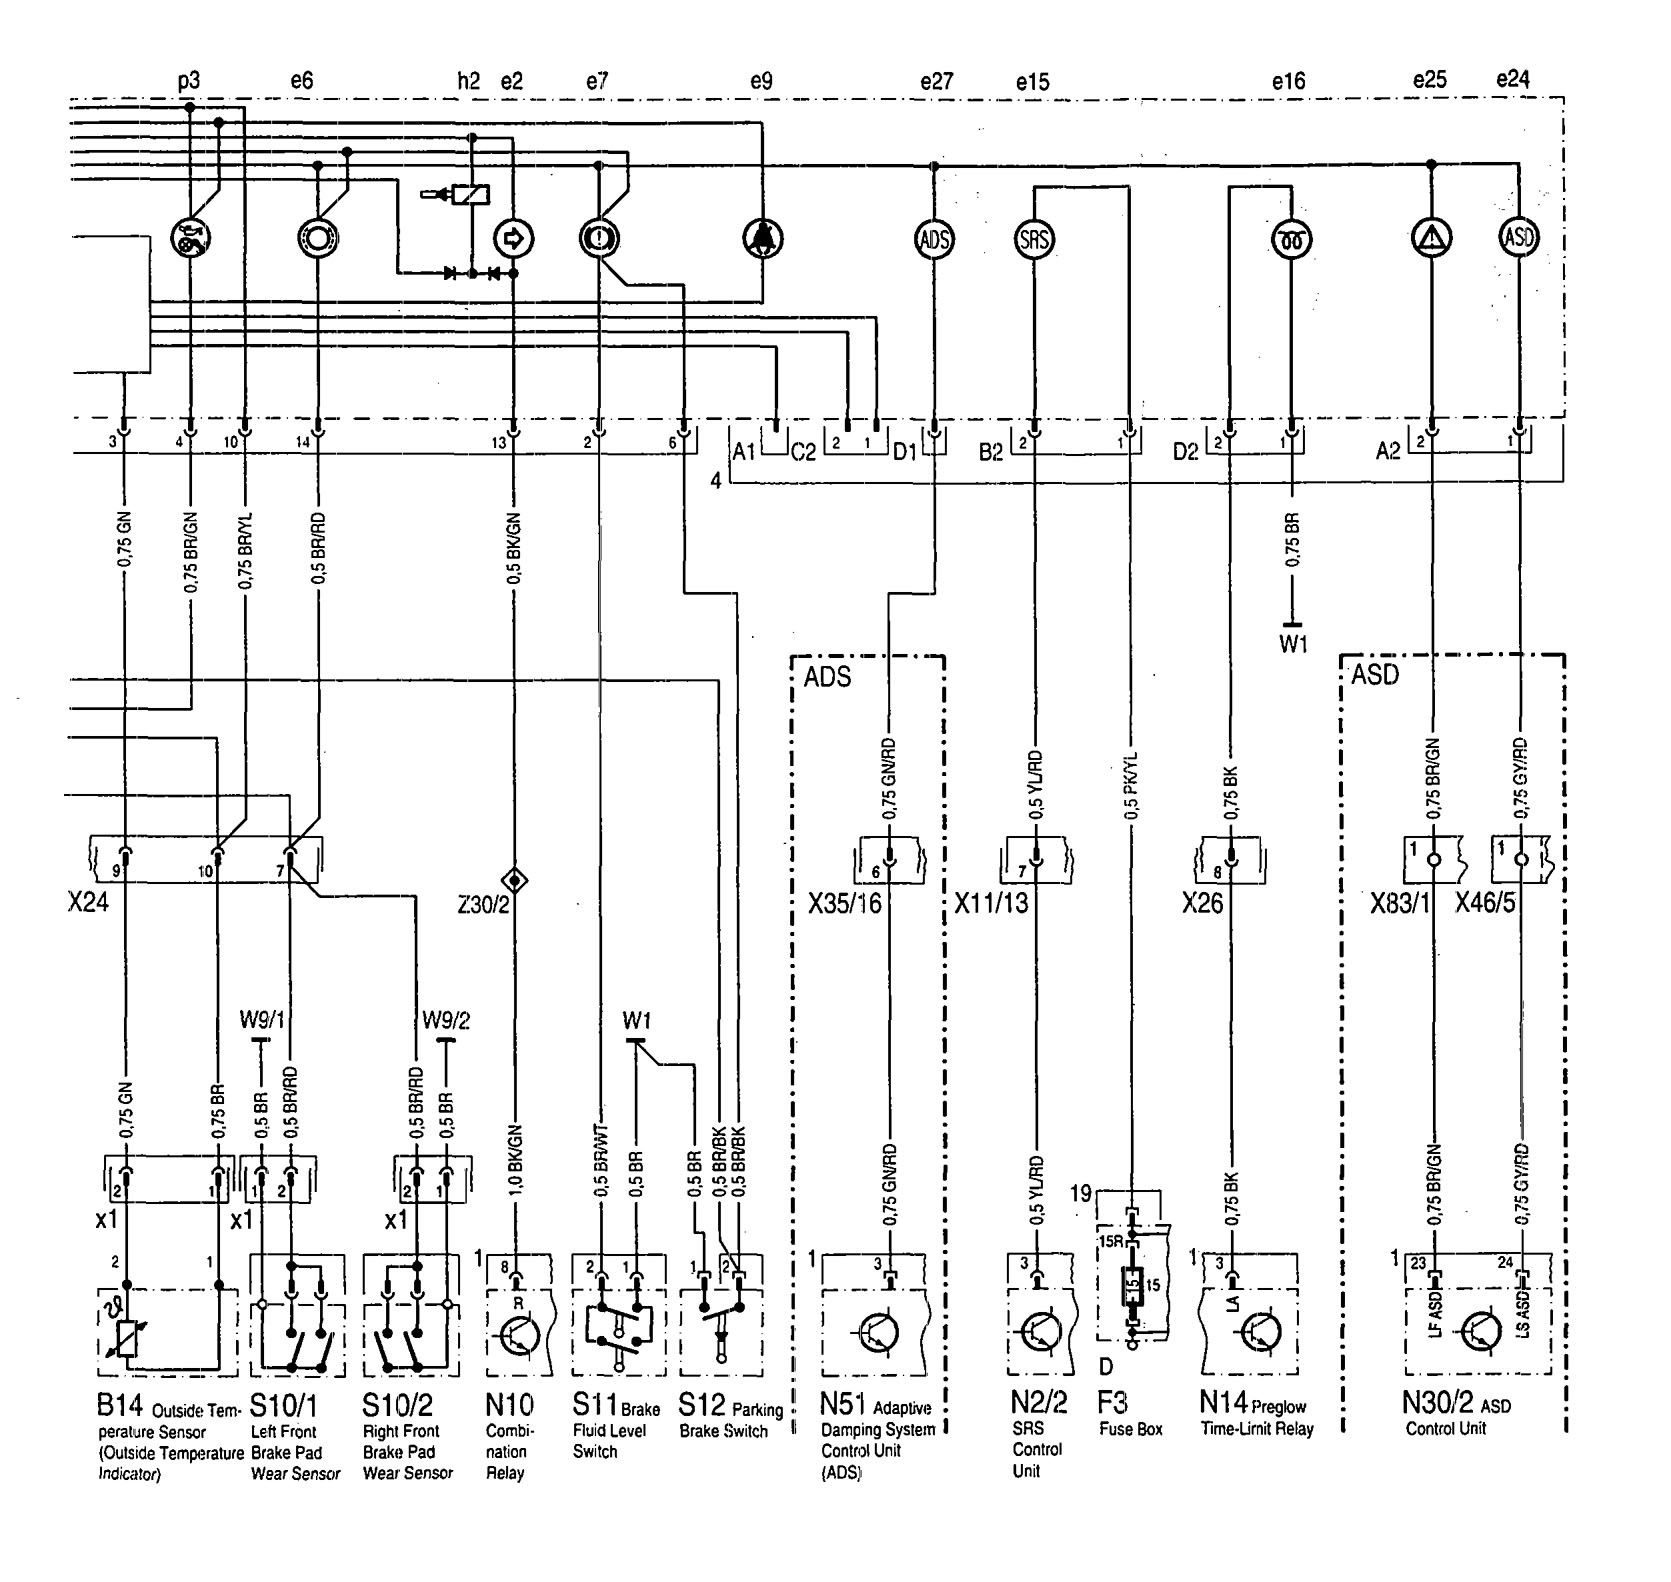 mercedes-benz 300sd (1992 - 1993) - wiring diagrams - instrumentation -  carknowledge.info  carknowledge.info